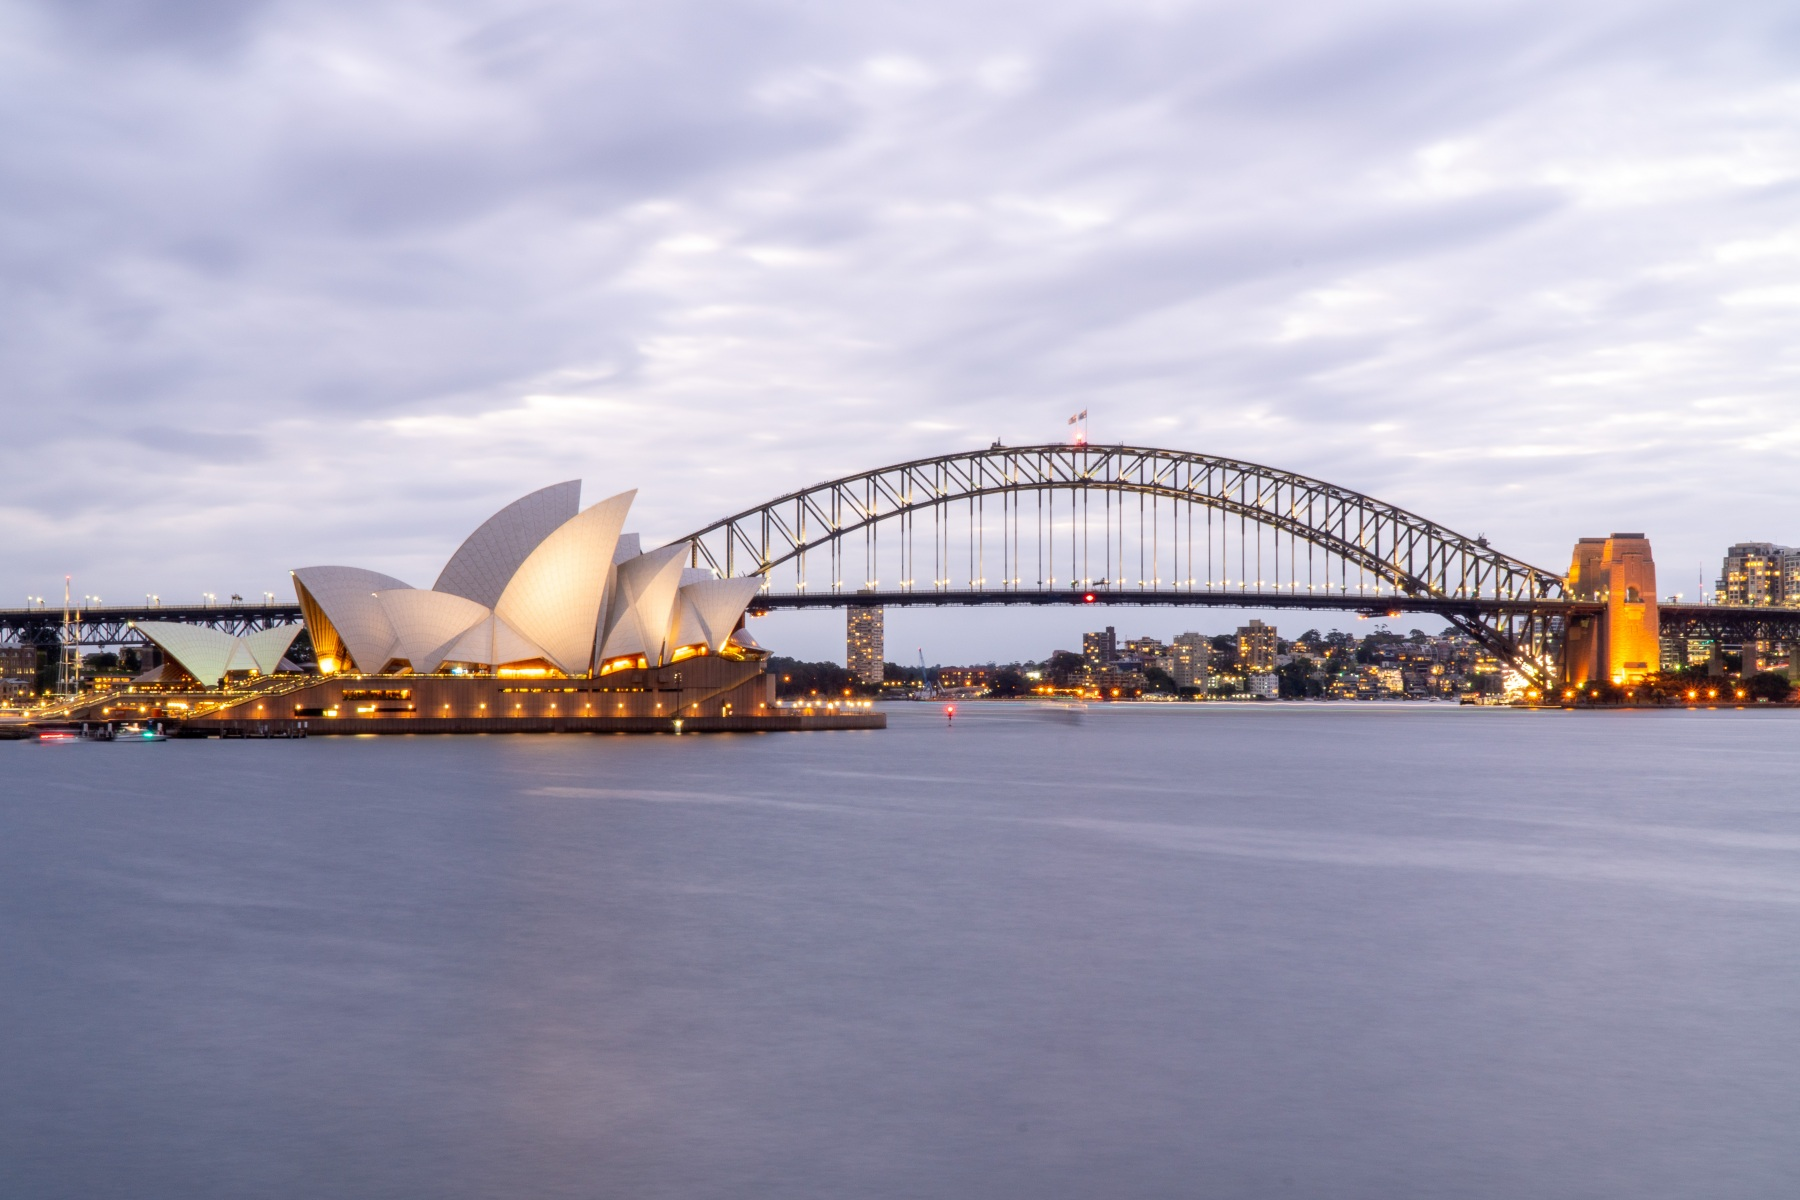 Sydney Opera House and Harbor Bridge